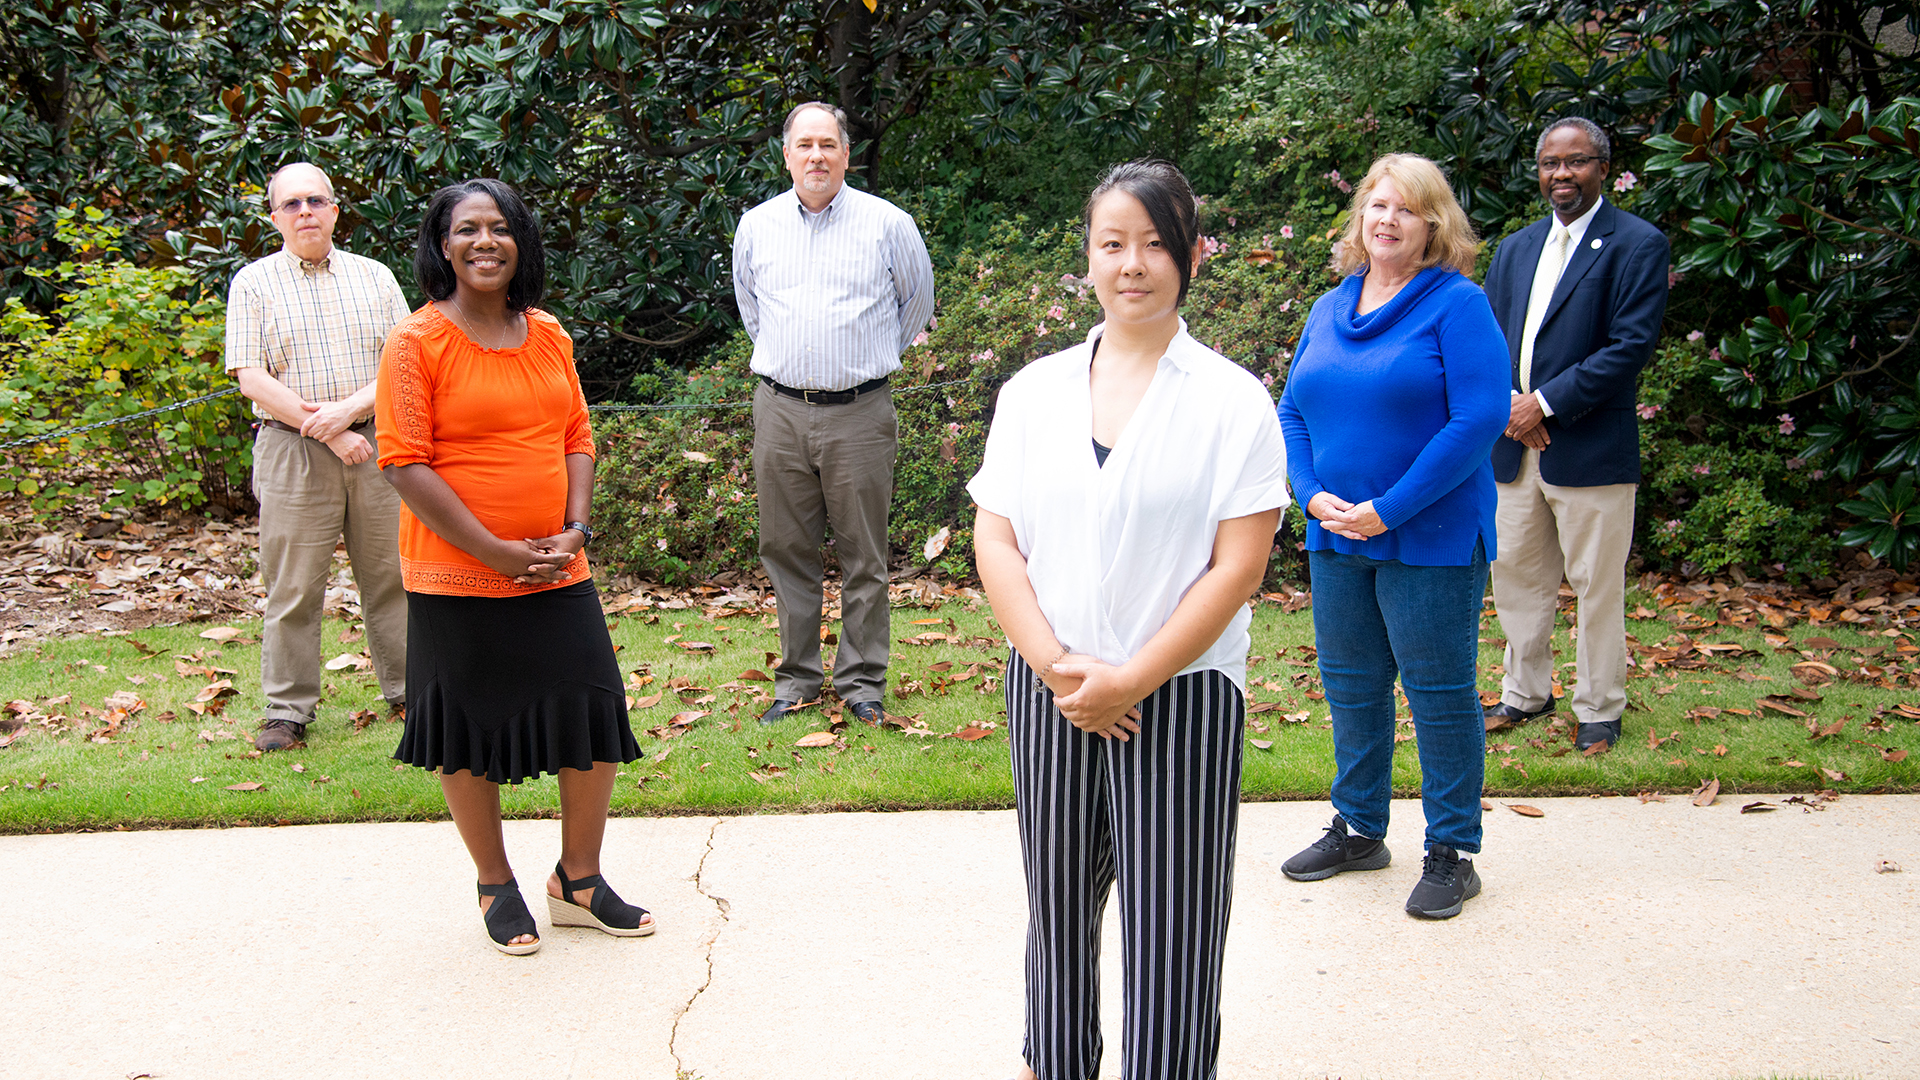 Auburn-University-College-of-Ag-Research-Office-Team-Members-Group-Photo-8018